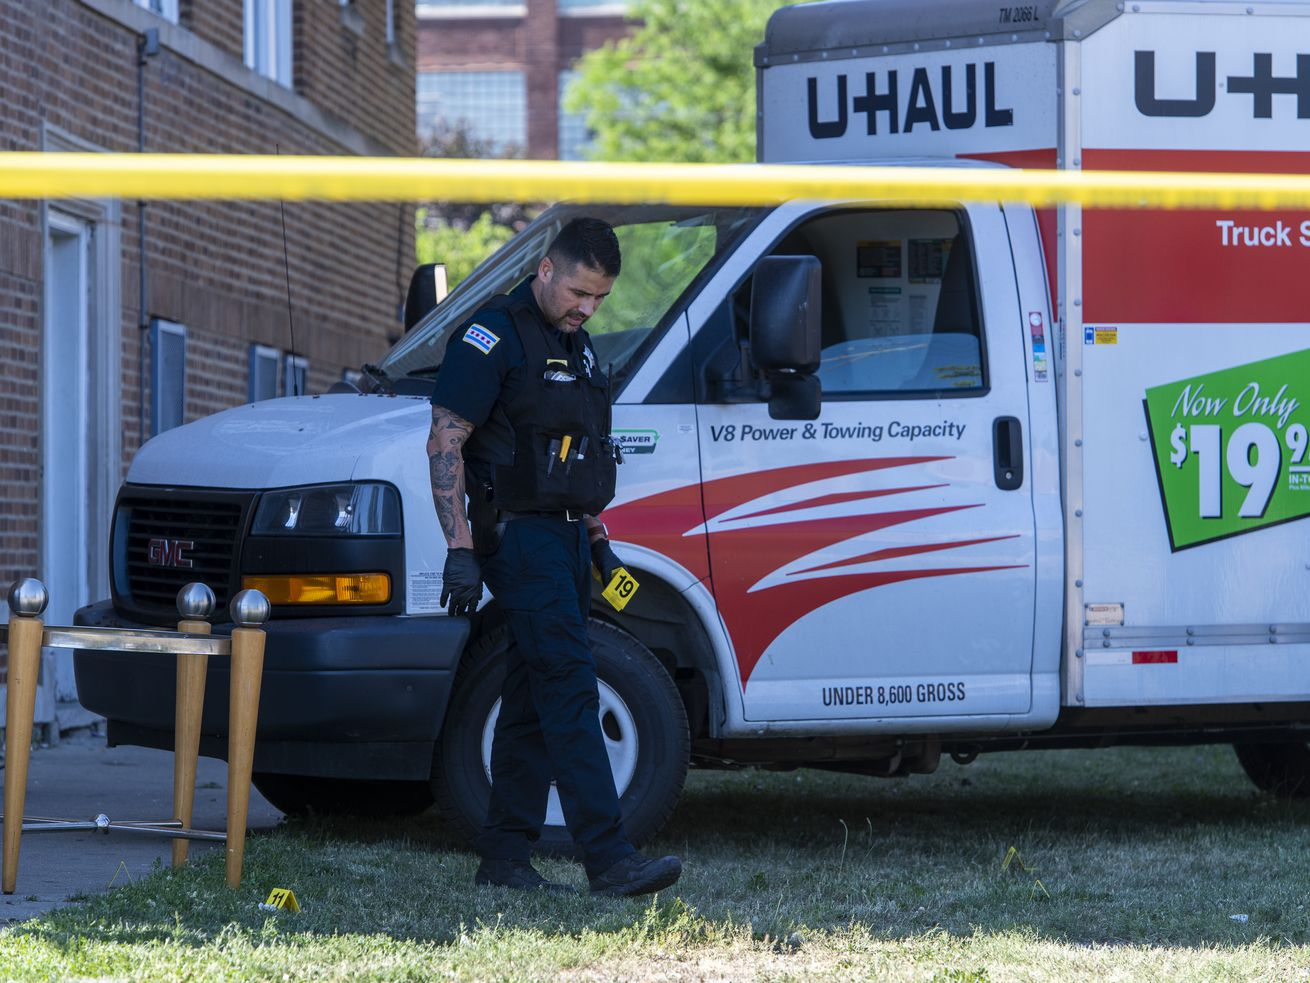 Chicago police work the scene where a 14-year-old by was shot and killed in the 1100 block of South Karlov Ave, in the Lawndale neighborhood, Thursday, June 10, 2021.